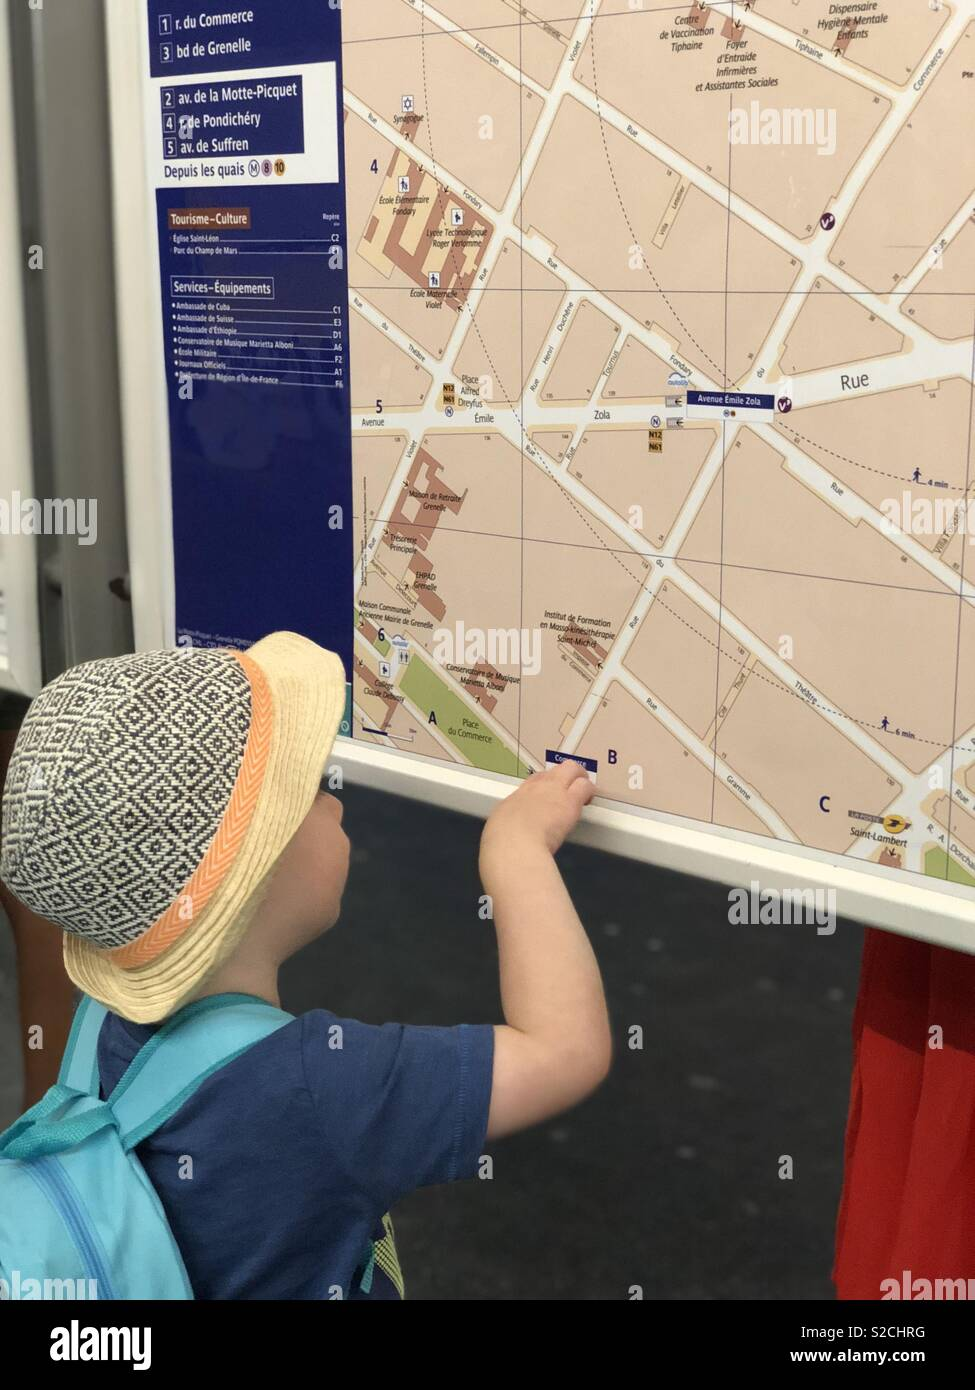 Toddler map reading in Paris metro - Stock Image